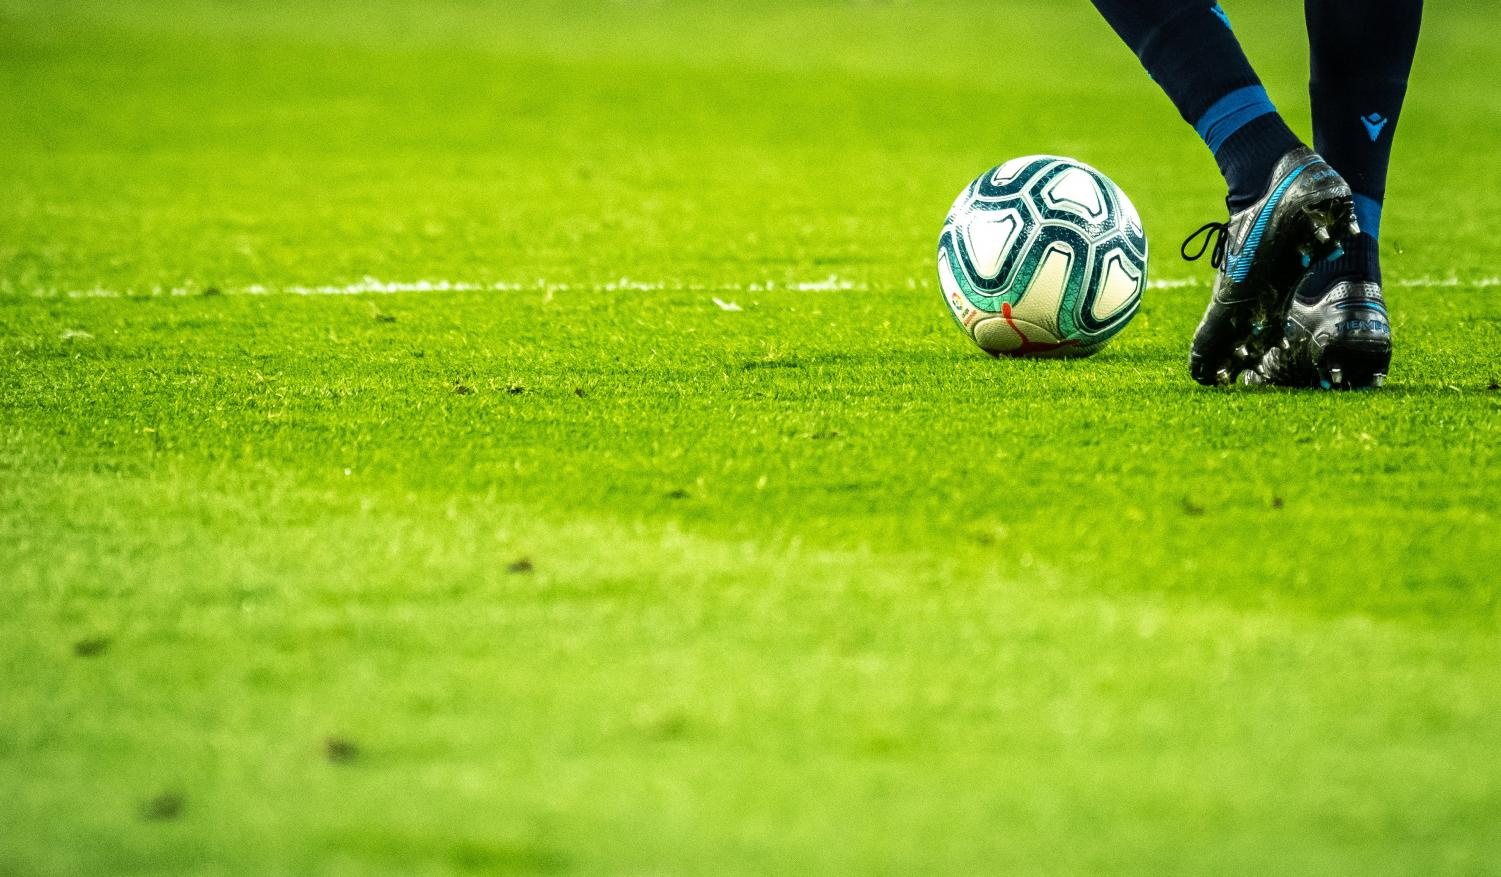 """The proposed """"Super League"""" would allow the richest teams to make even more money, take part in more exciting high-intensity games, and drastically change the world of professional soccer."""